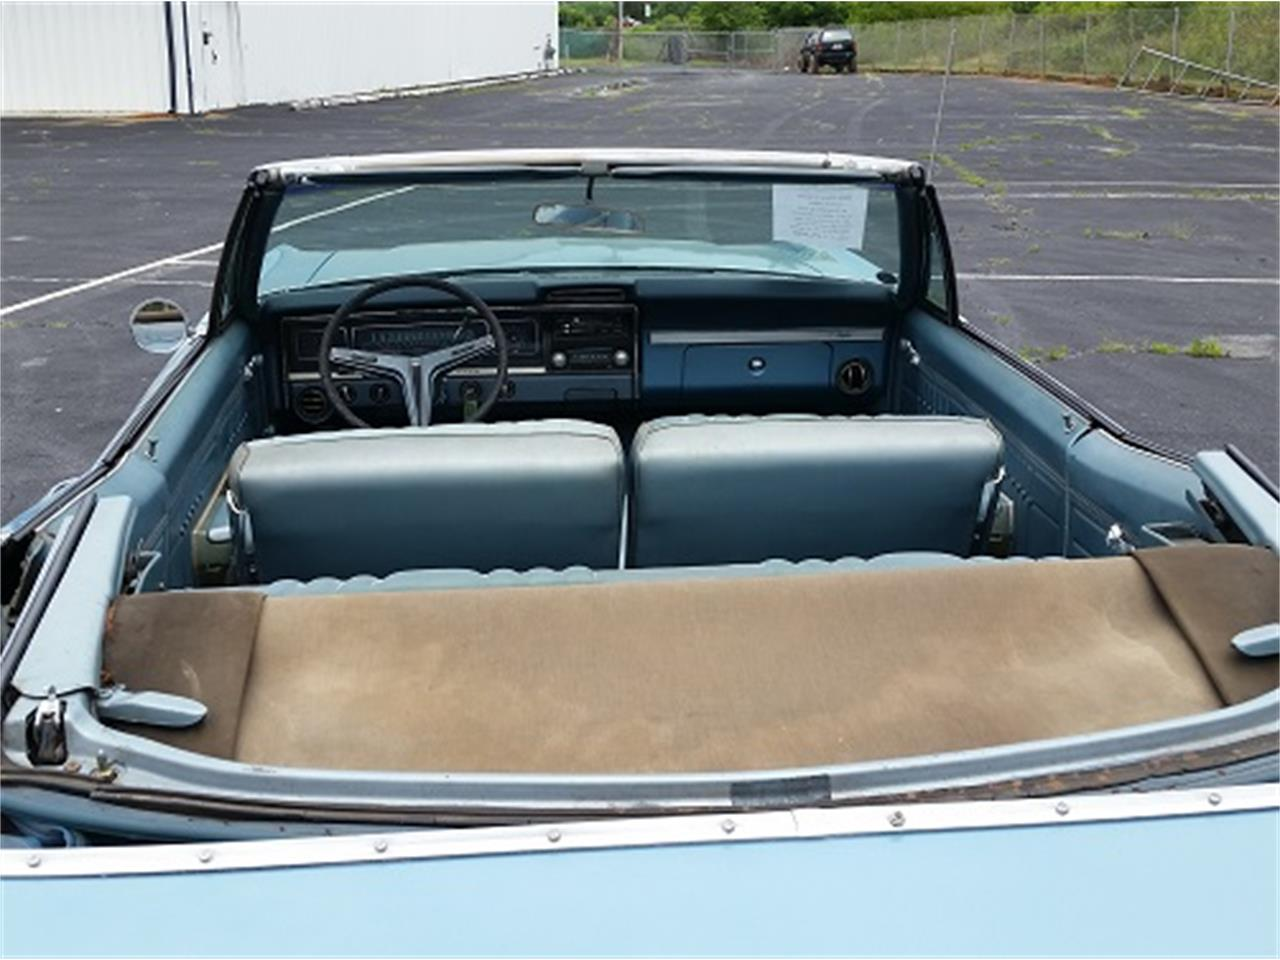 Large Picture of 1968 Chevrolet Impala located in South Carolina - $22,900.00 - KUCU